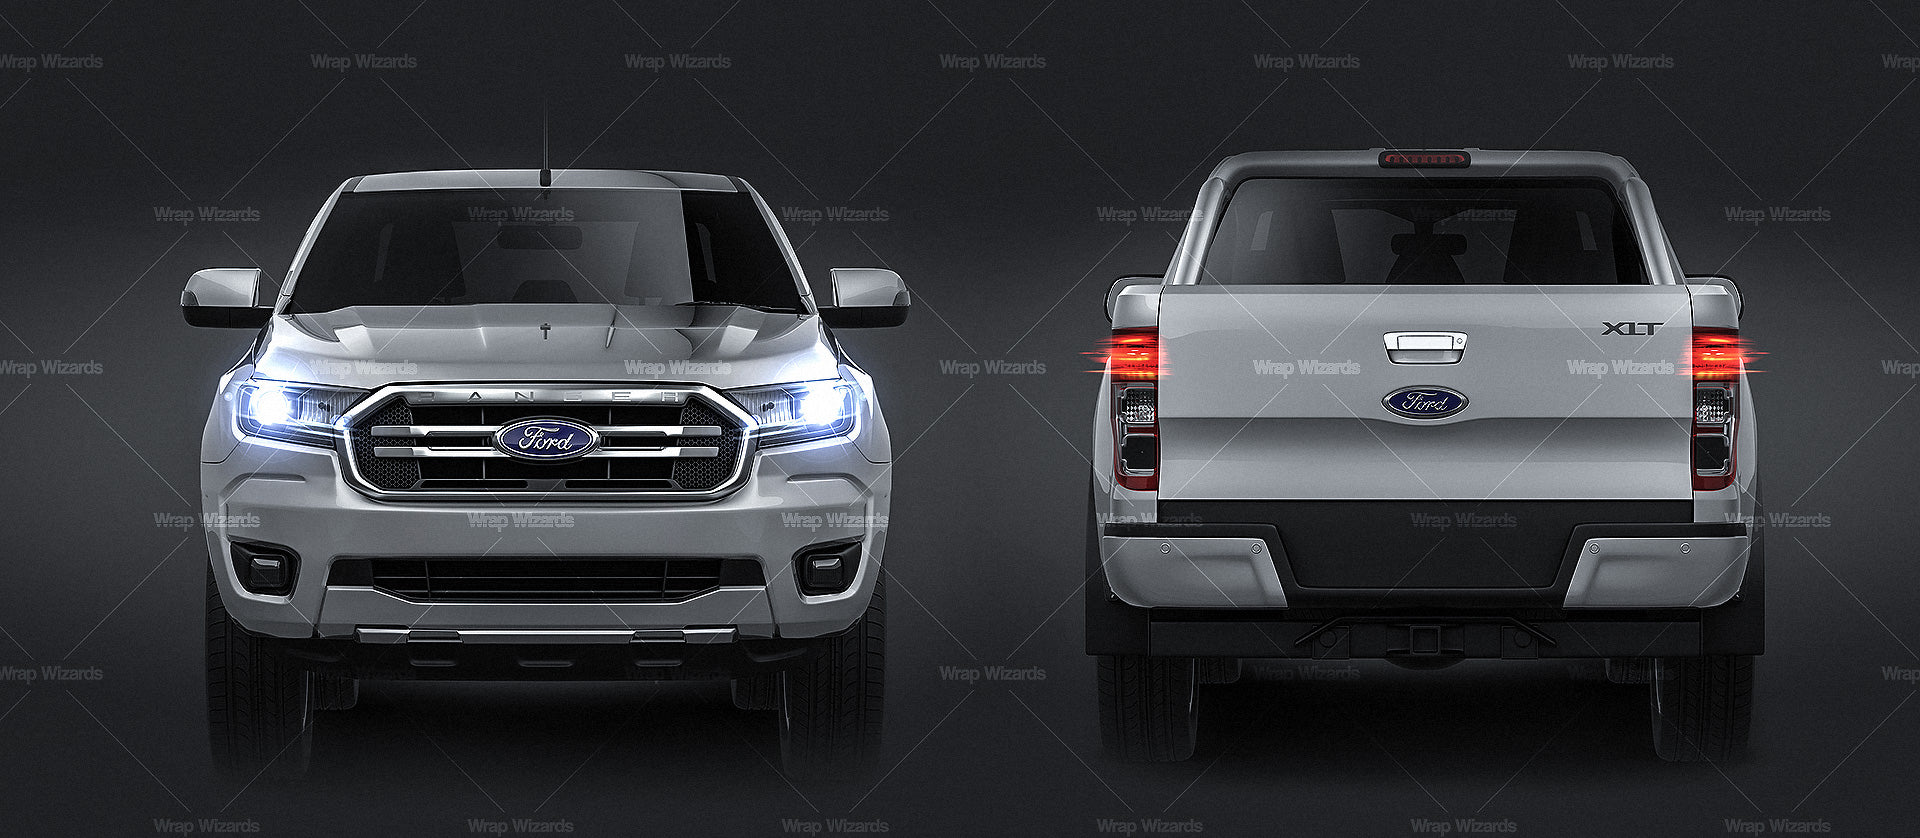 Ford Ranger DoubleCab XLT 2018 all sides Car Mockup Template.psd